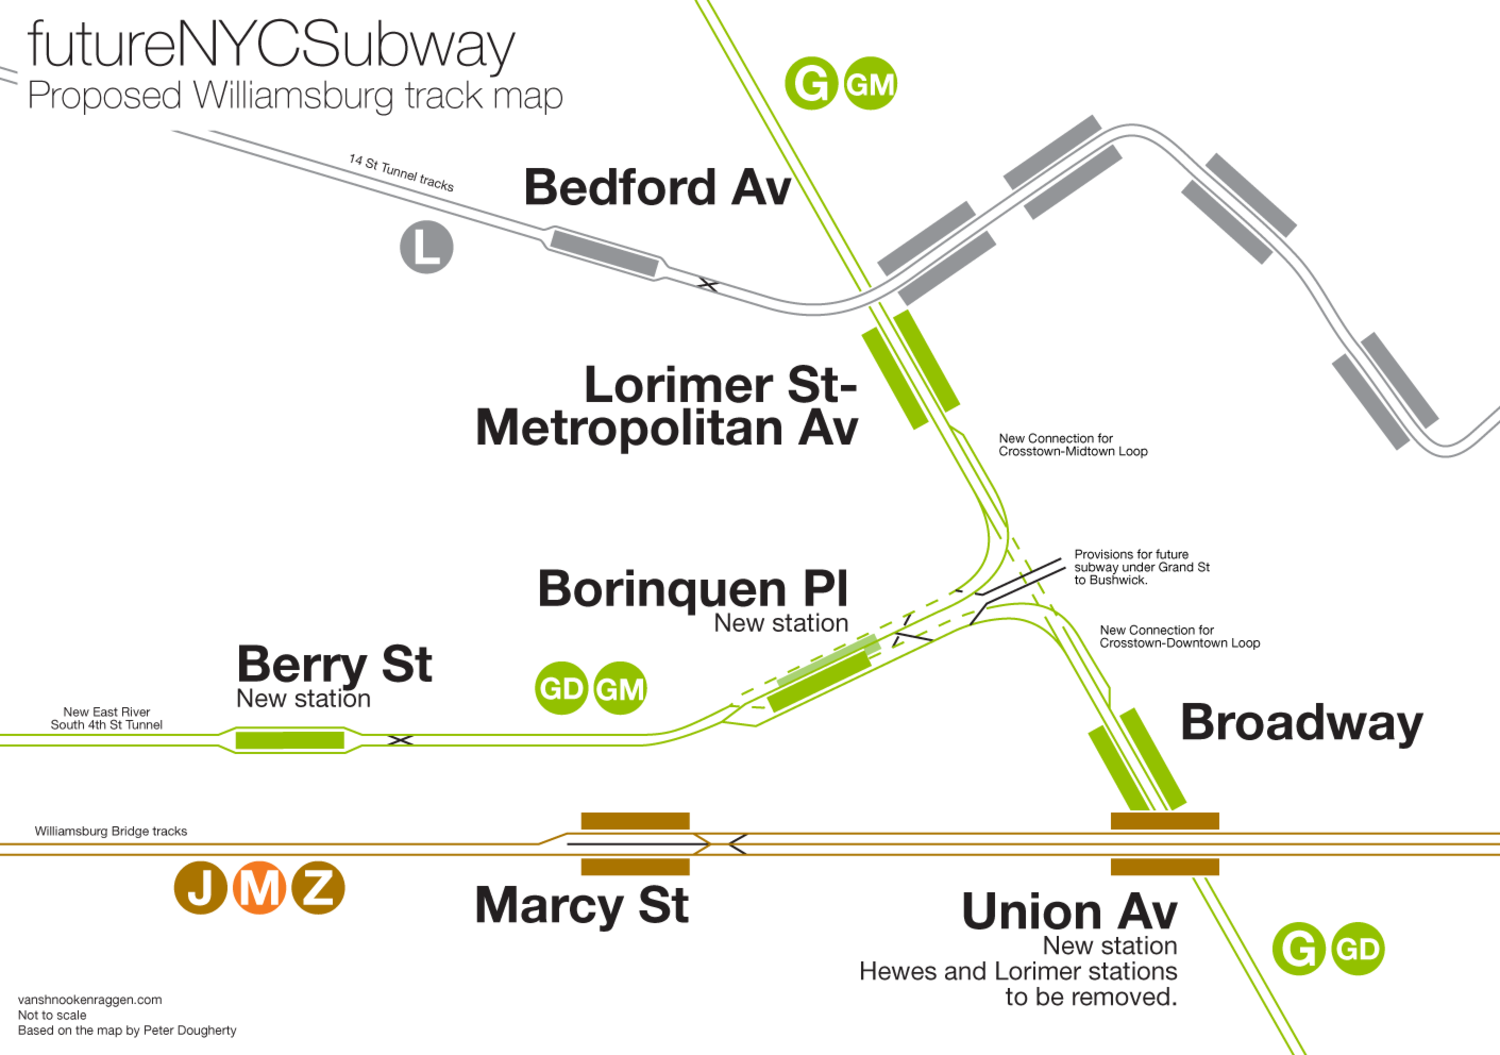 Proposed track map showing how Crosstown Loop Lines would connect with the existing Crosstown Line in Williamsburg.